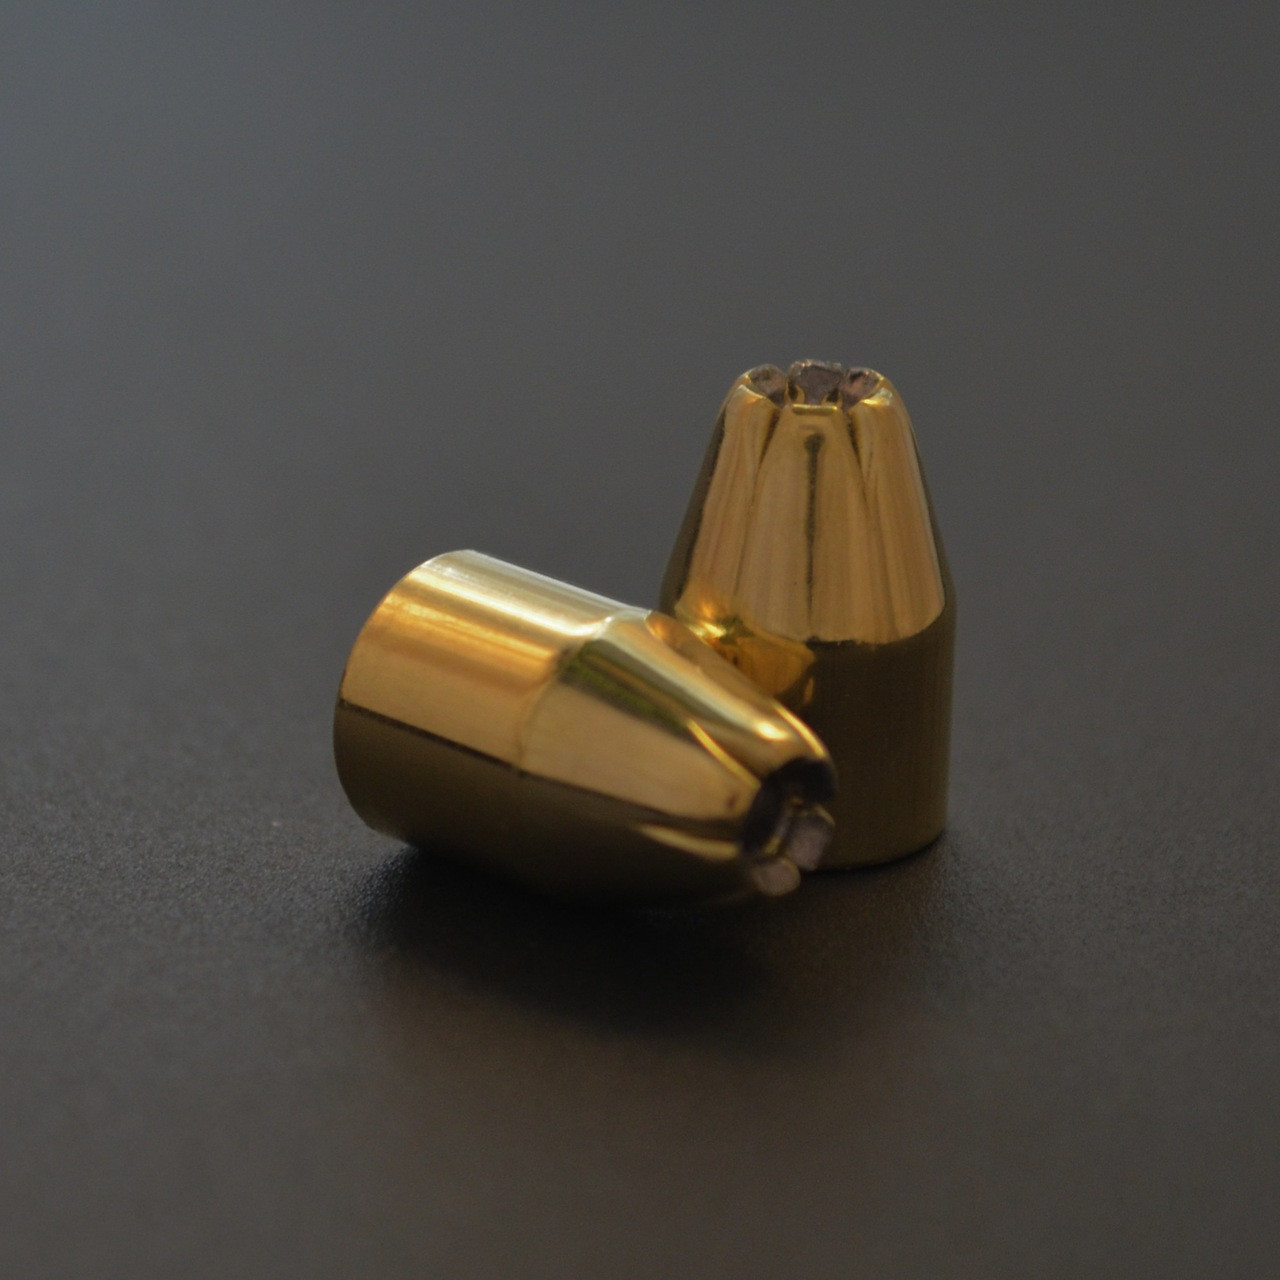 9mm/115gr JHP - 4,000ct CASE